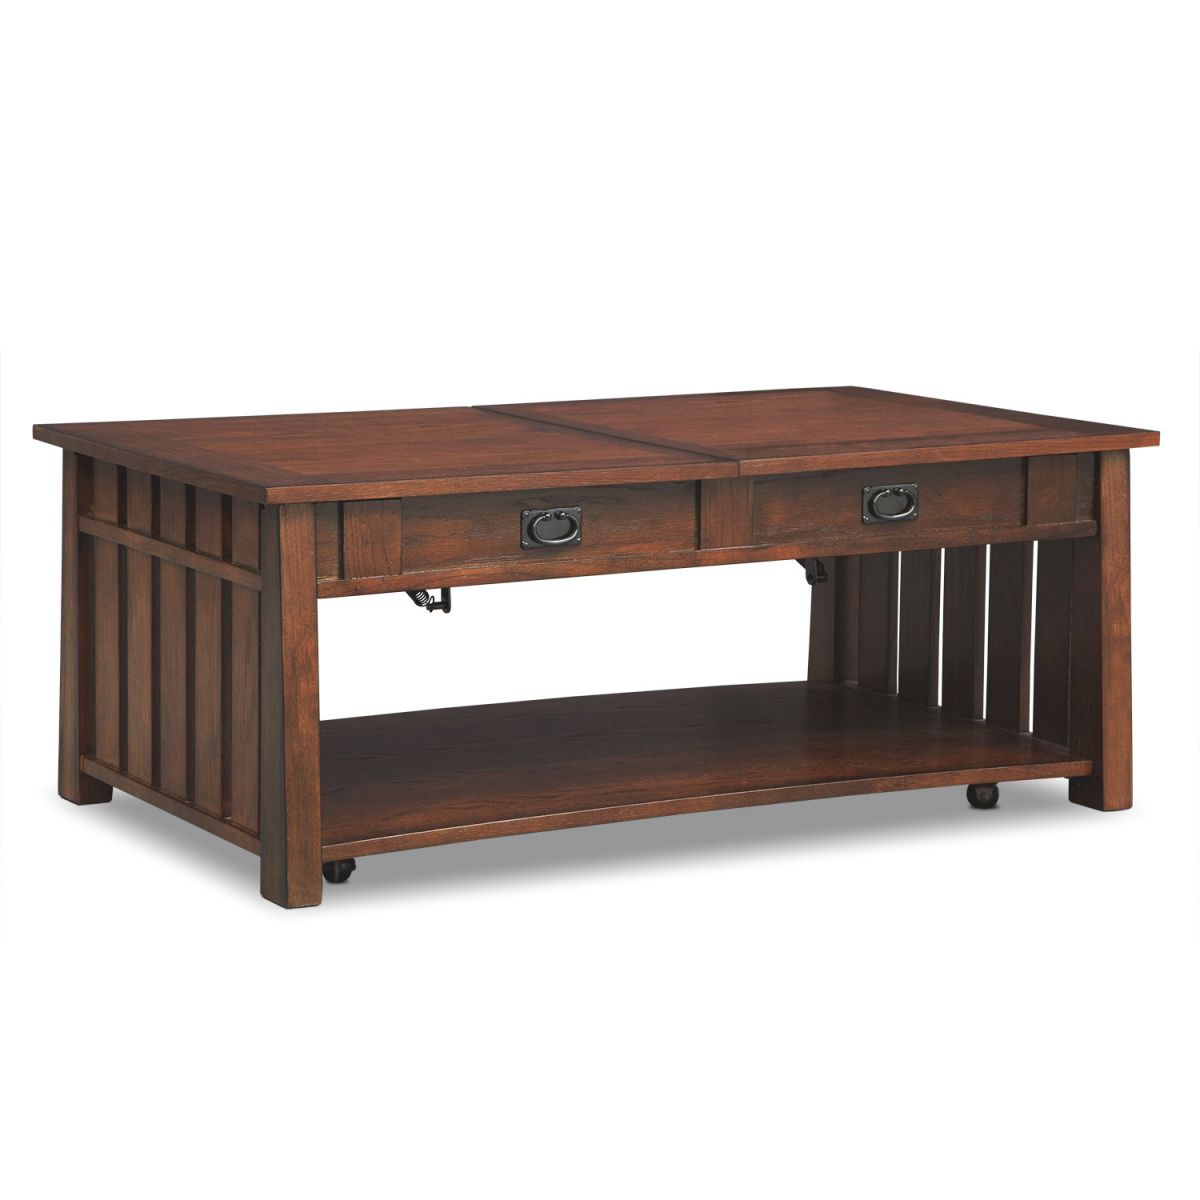 Tribute Lift Top Coffee Table pertaining to Living Room Furniture Tables